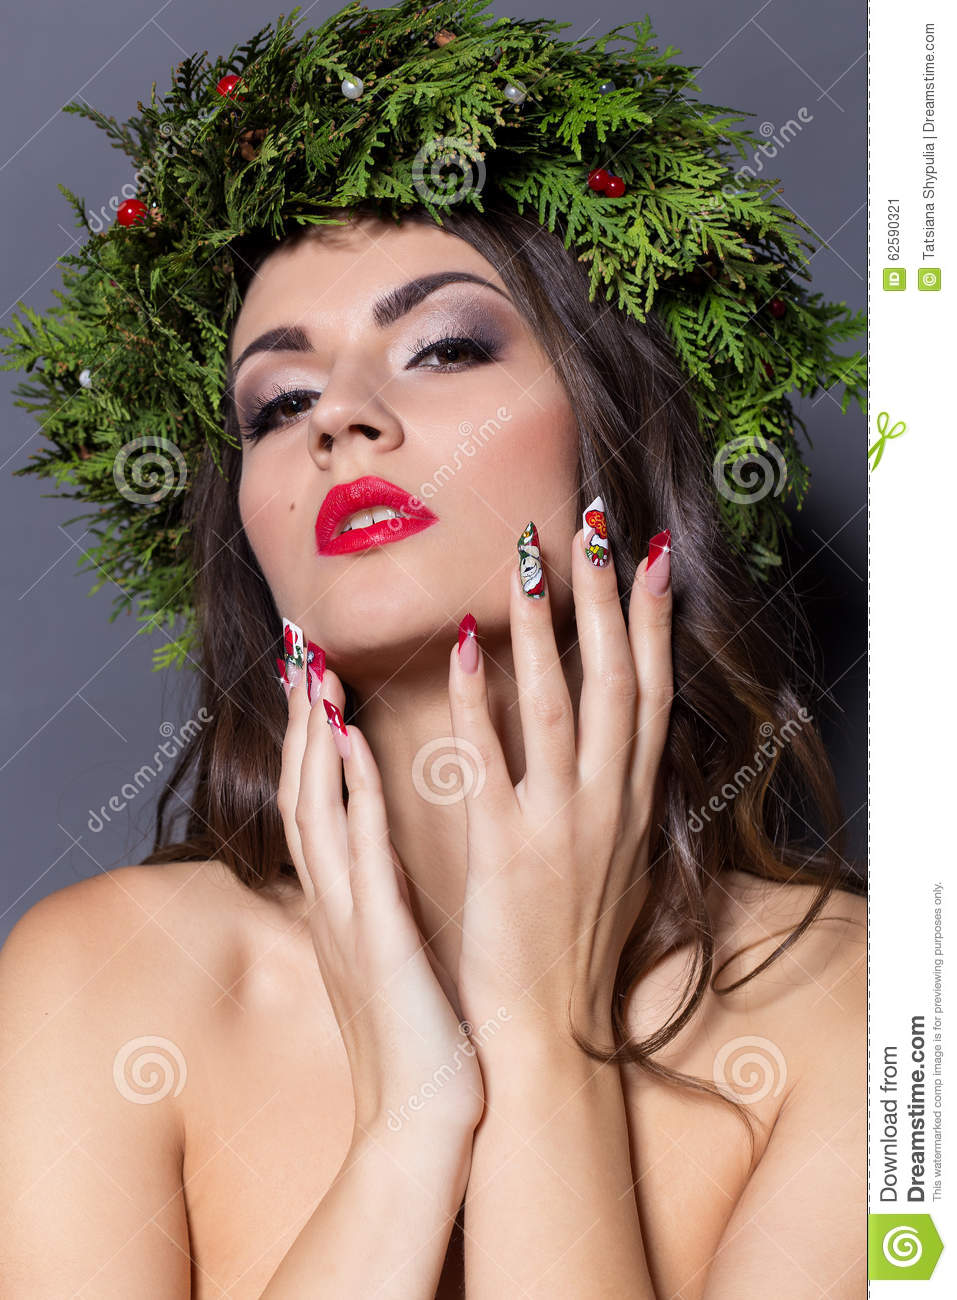 new year hair style new year hairstyle and makeup royalty free stock photo 6277